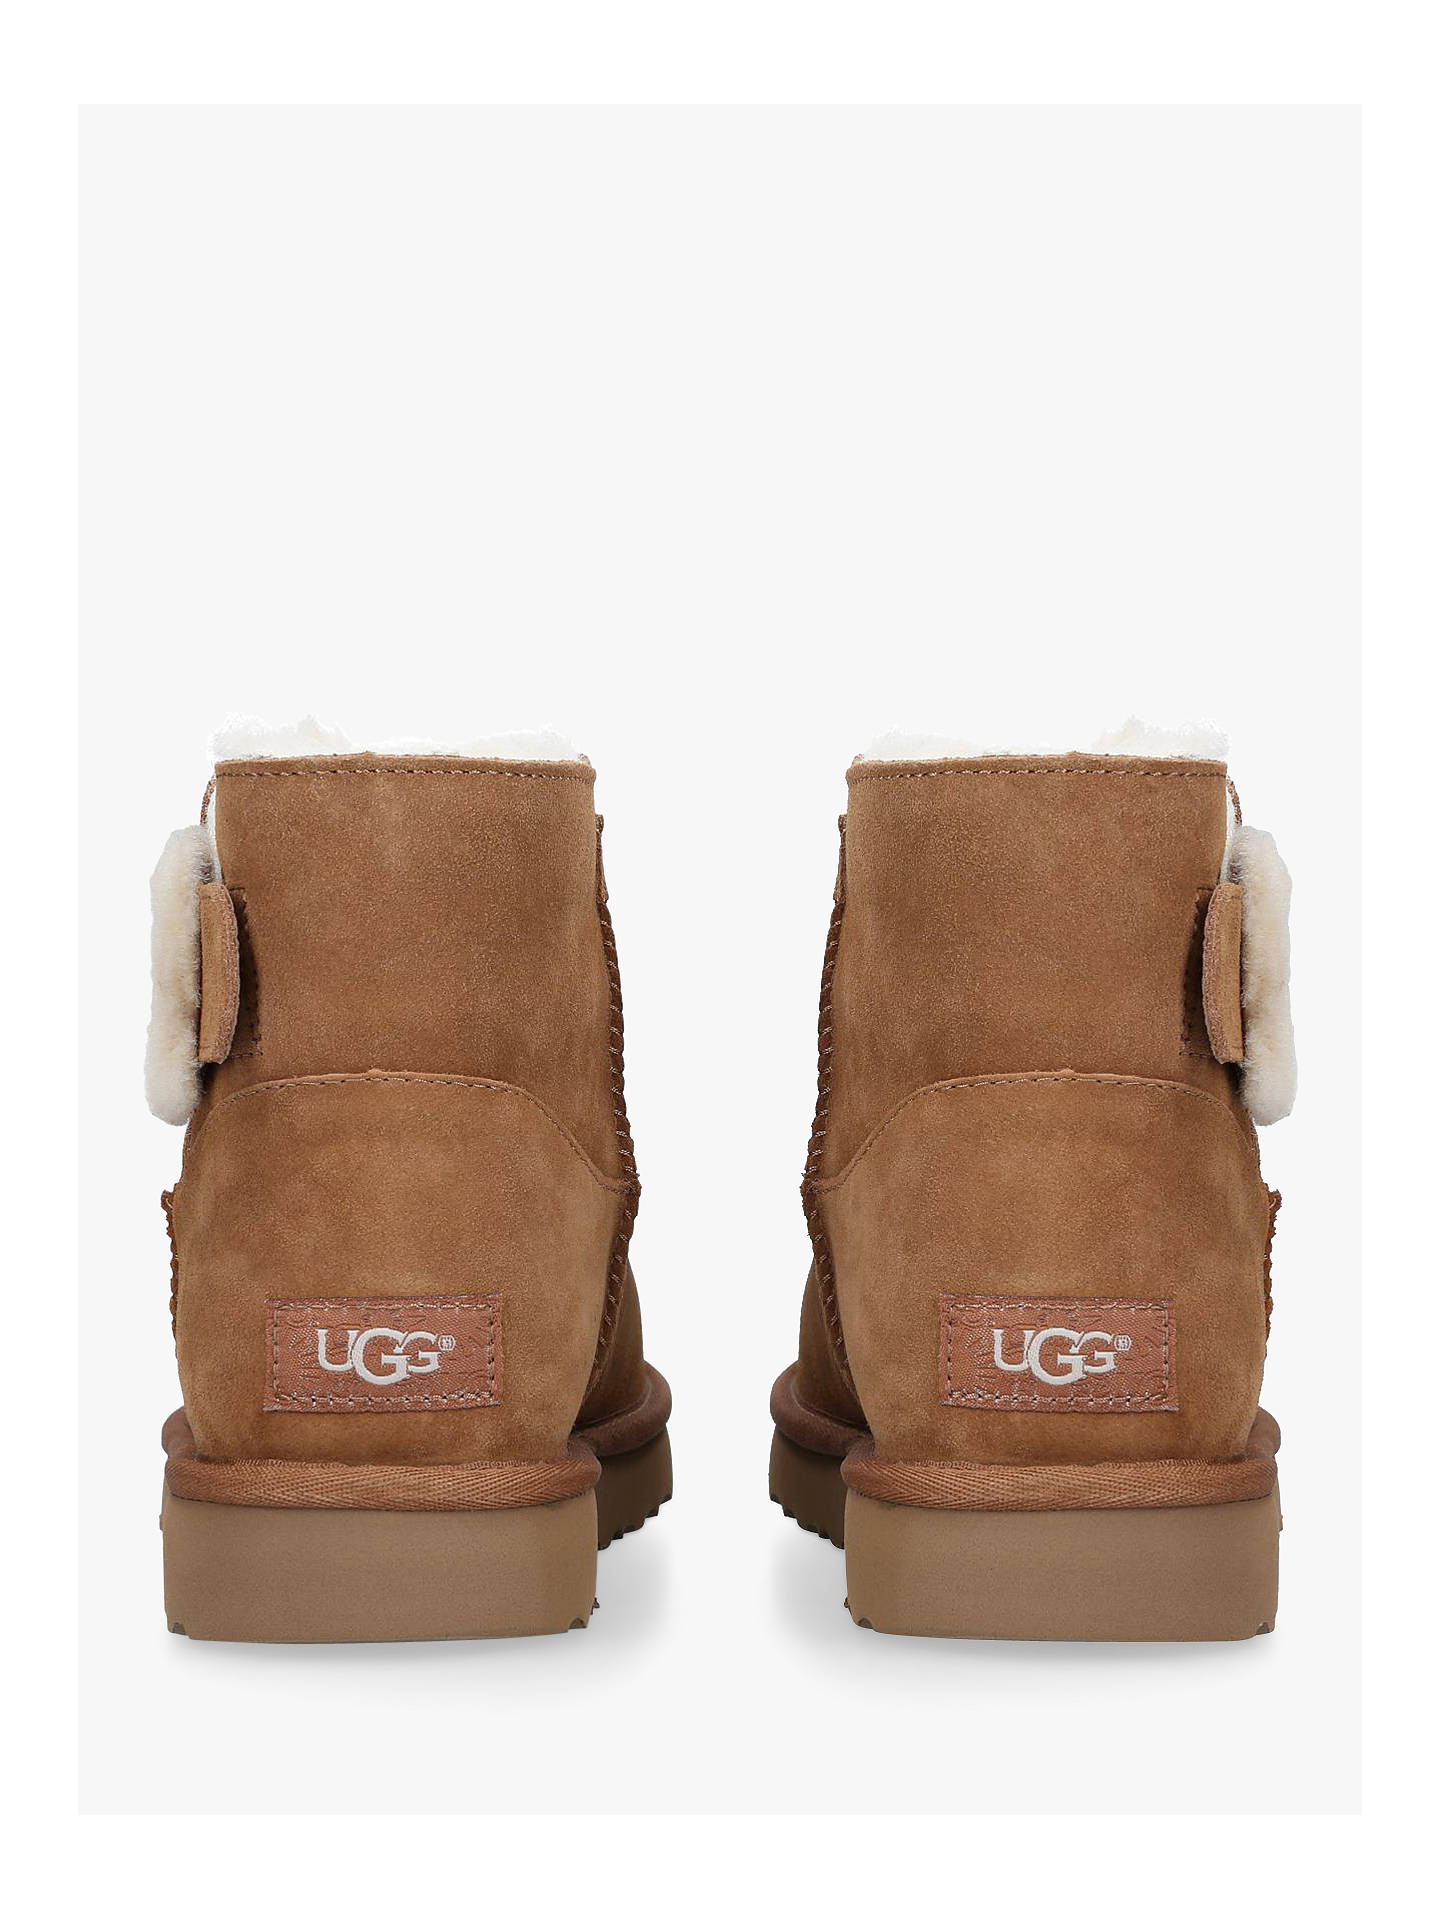 fb595fa8eae UGG Mini Bailey Fluff Buckle Ankle Boots at John Lewis & Partners